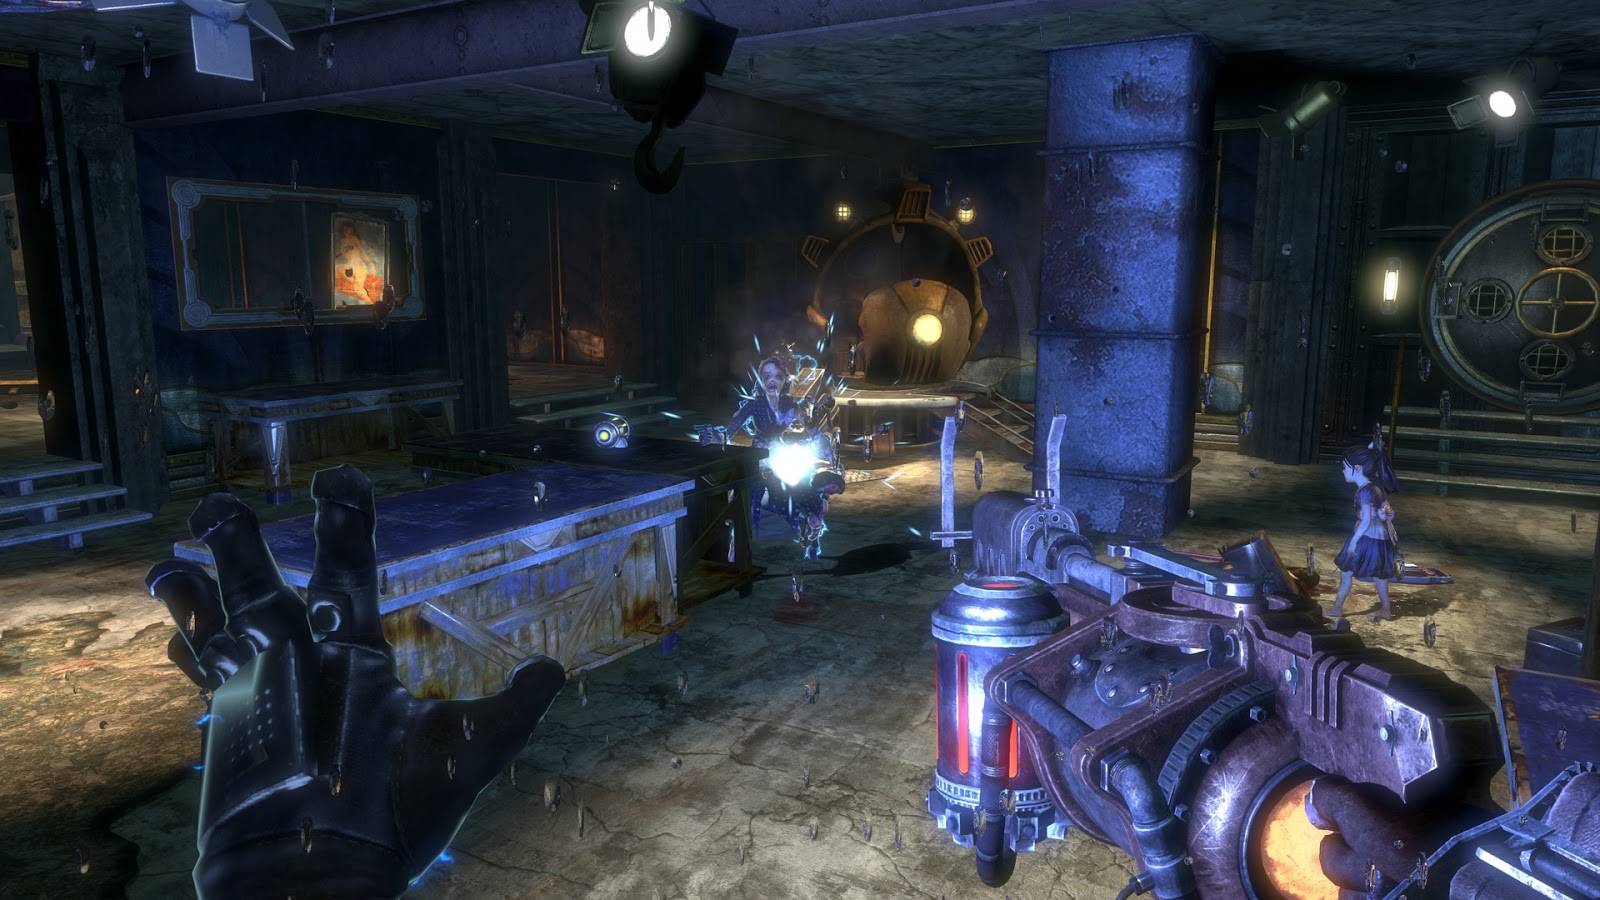 ss 56165cef2c36be96d1ea97fd7c12a9840a8f9229.1920x1080 - BioShock 2 Remastered - PC